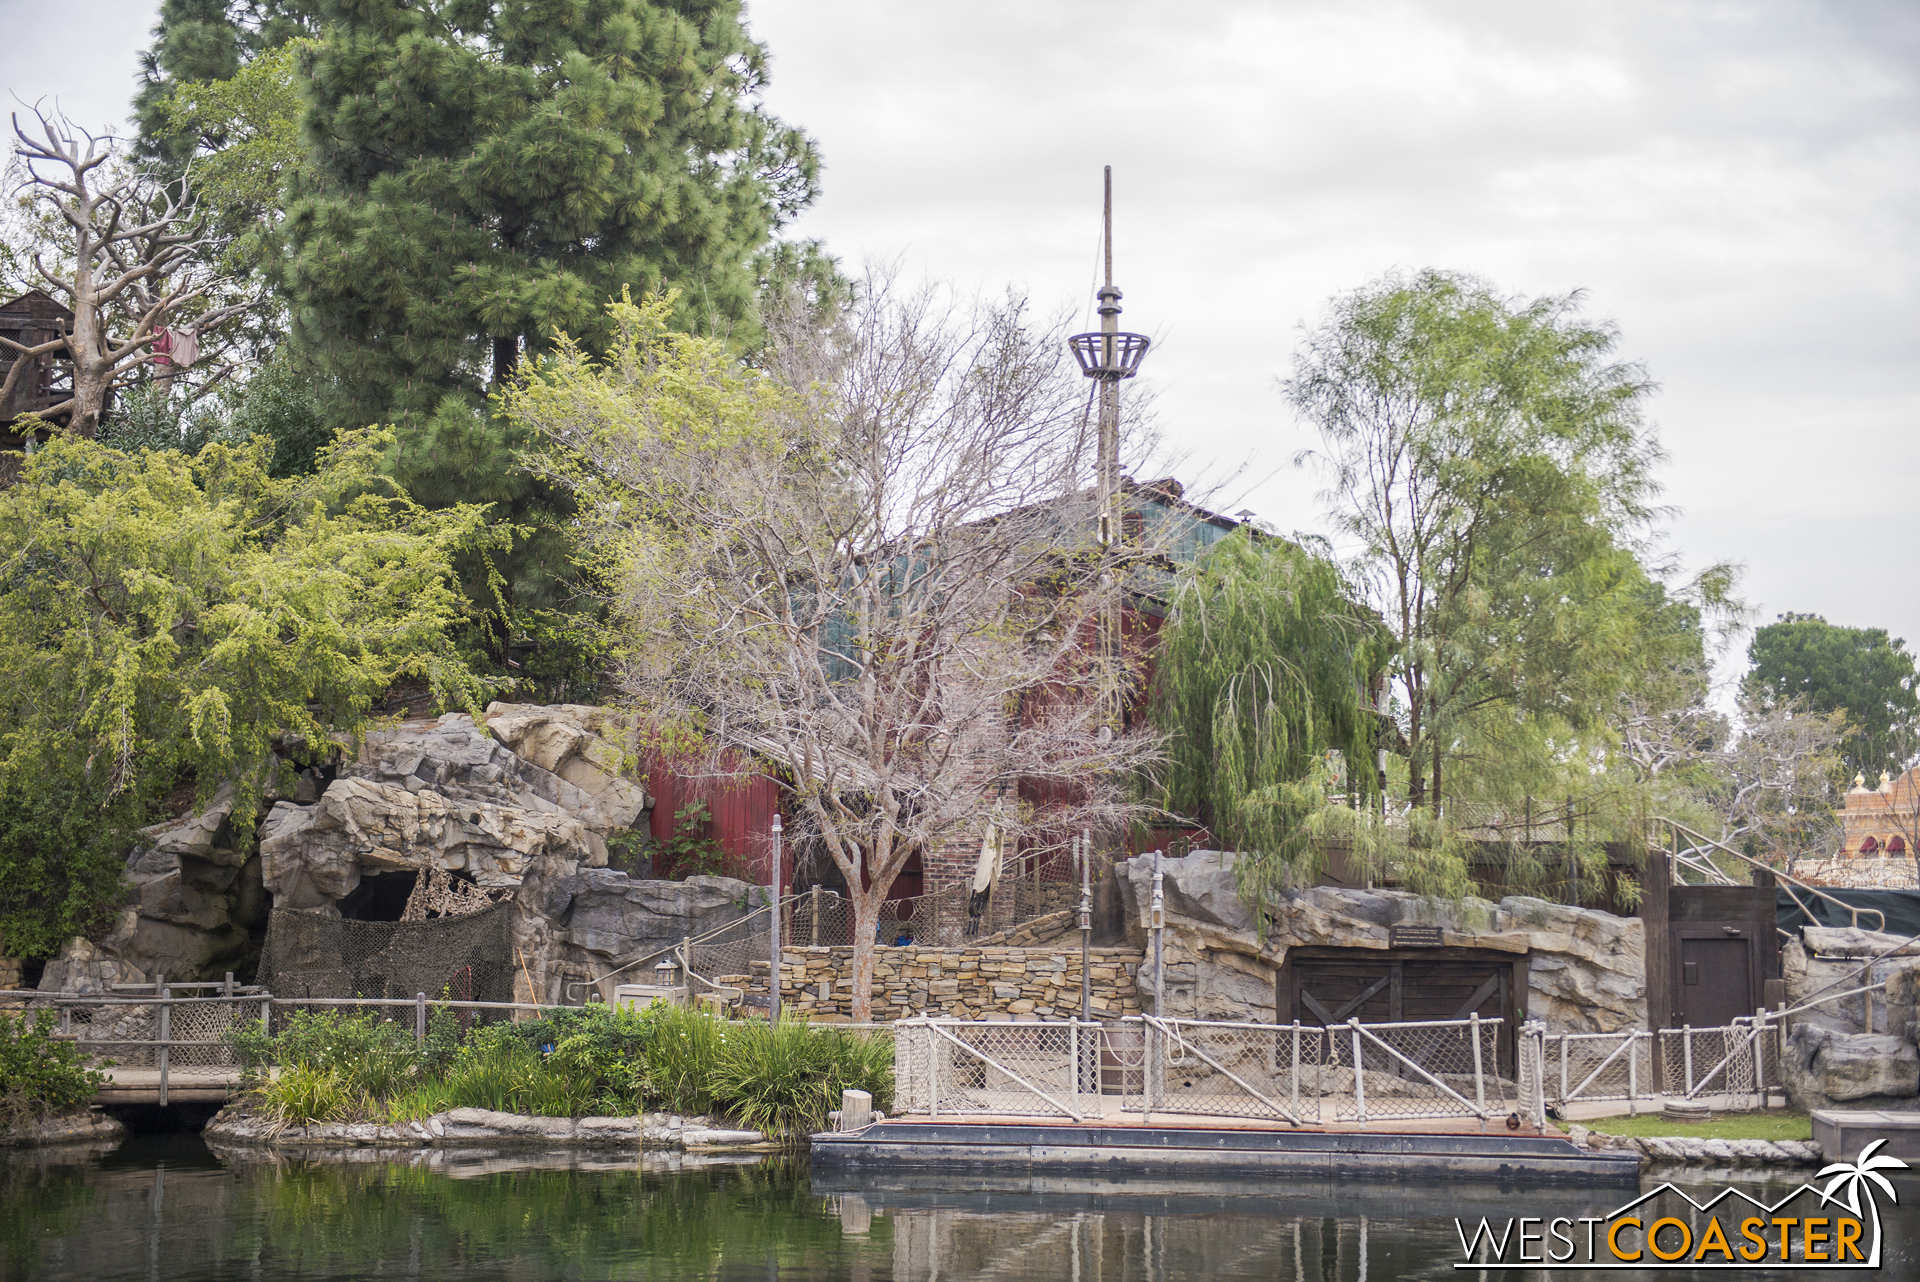 Tom Sawyer's Island has its own crow's nest as a pairing with the Columbia's.